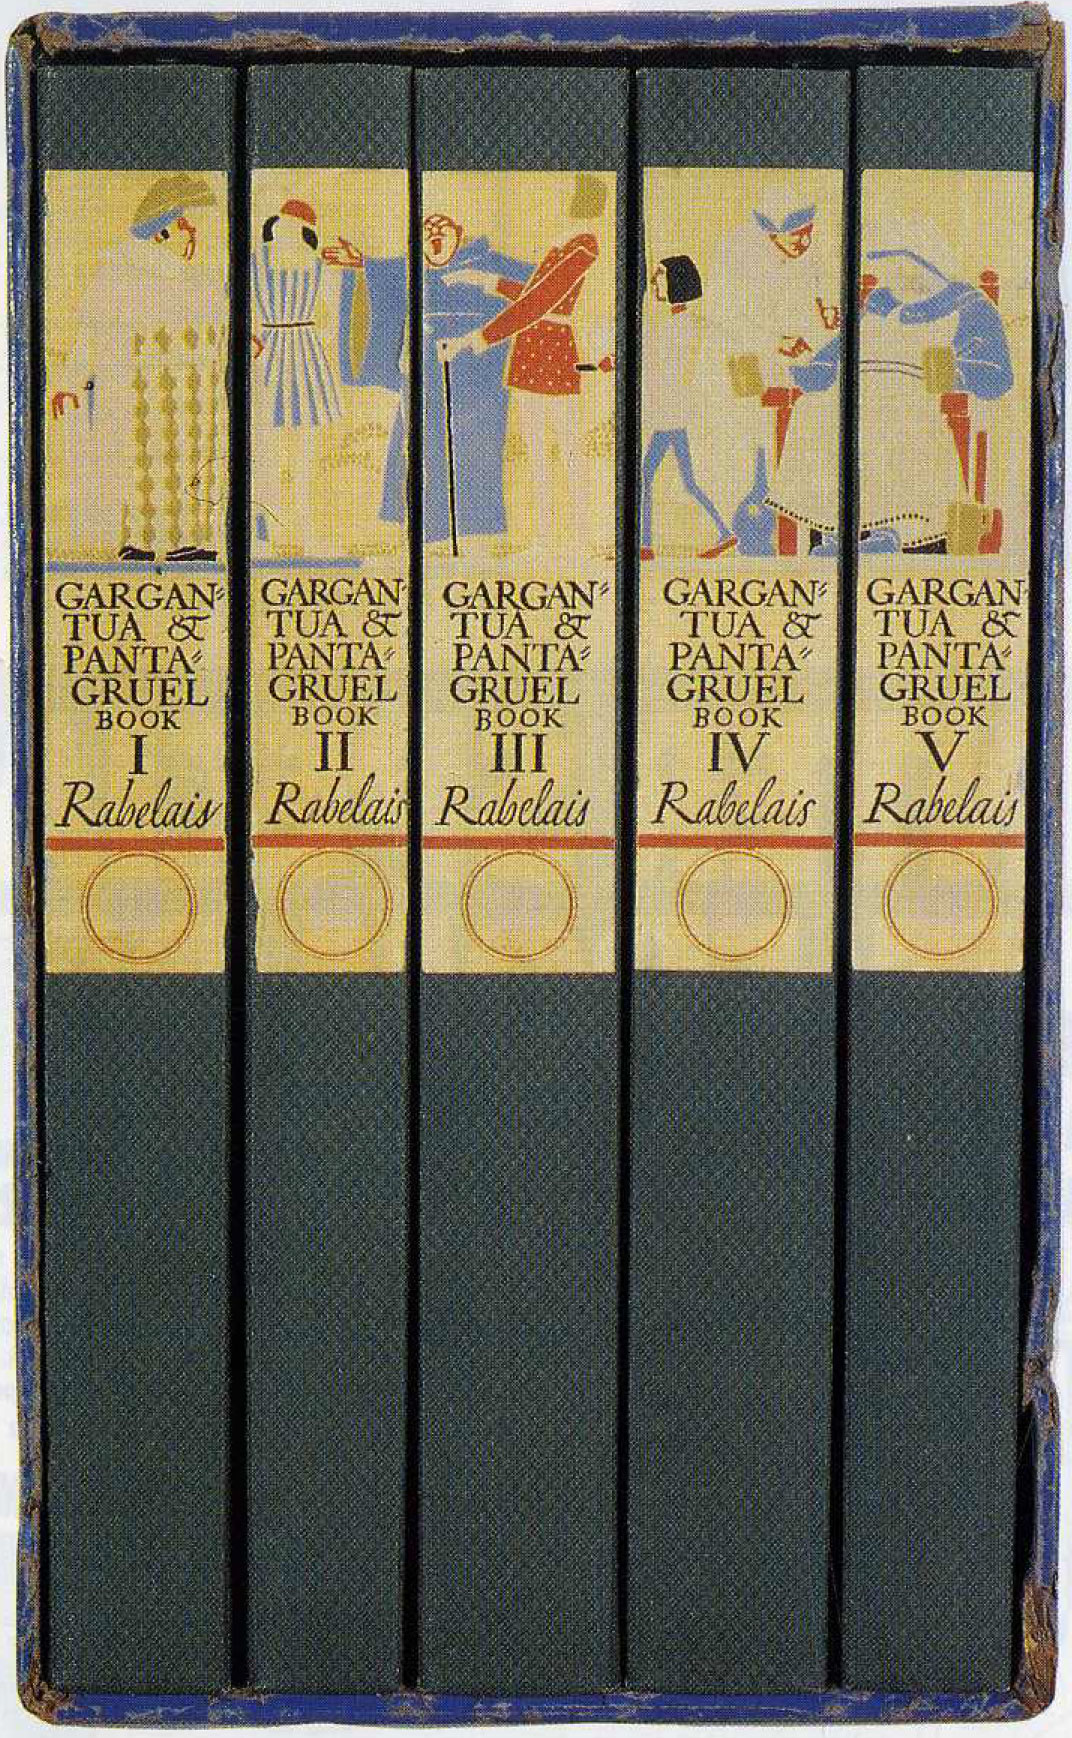 William-Addison-Dwiggins-livres-gargantua-1936